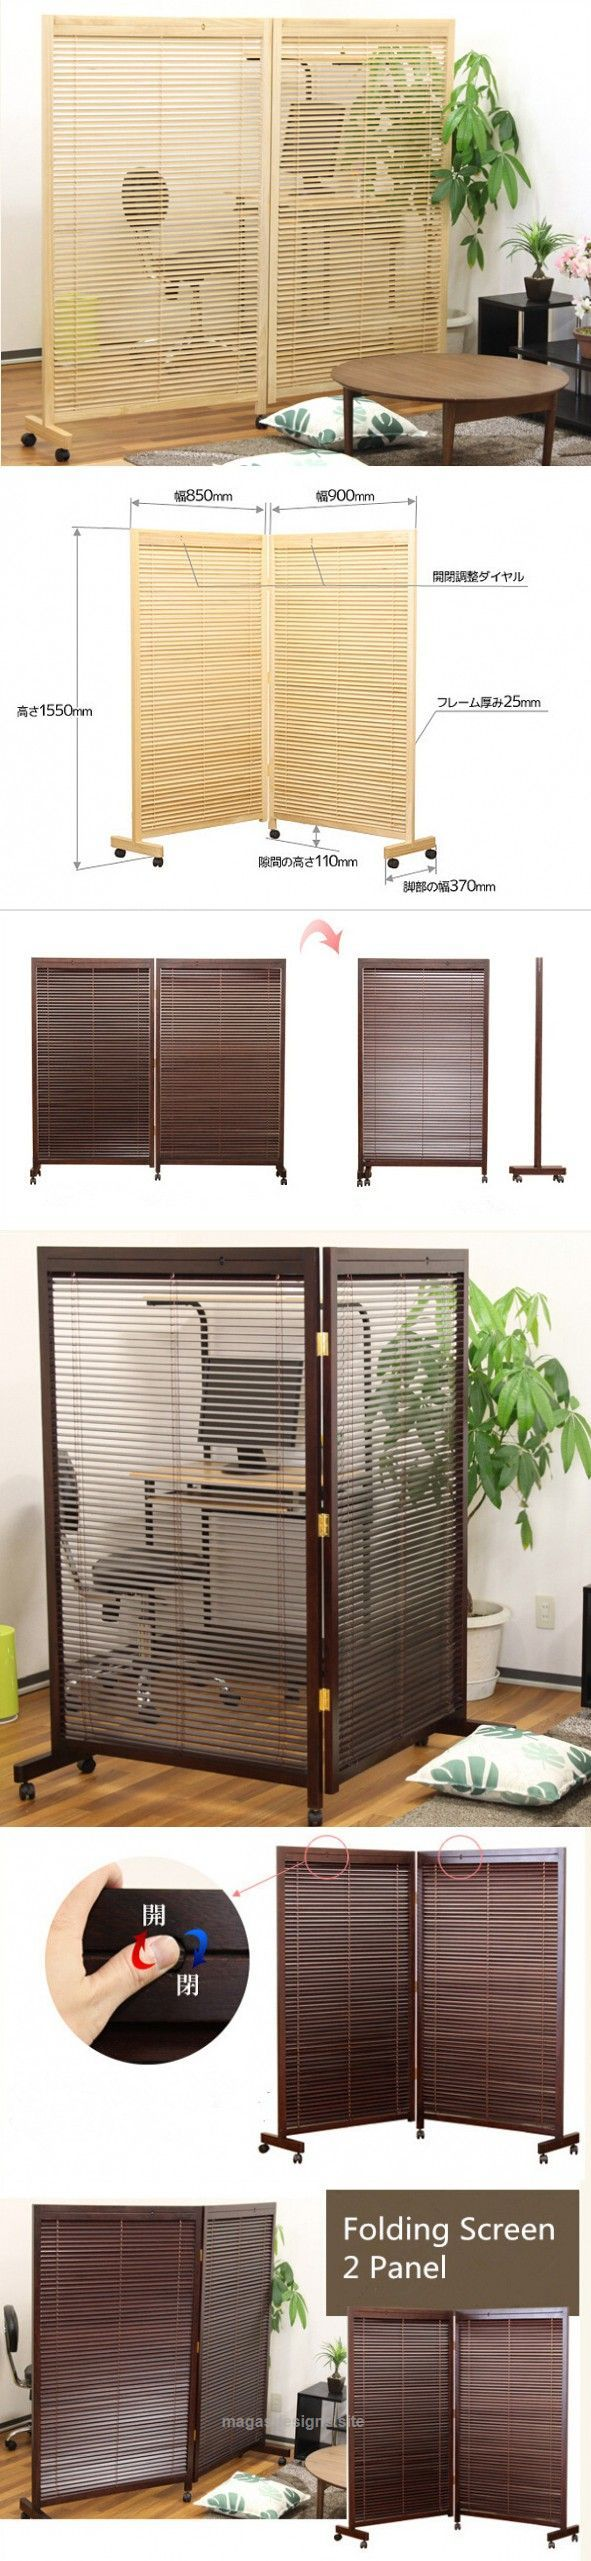 Splendid Japanese Movable Wood Partition Wall 2-Panel Folding Screen Room Divider Home Decor Oriental Decorative Portable Asian Furniture $179  The post  Japanese Movable Wood Partition Wall 2-P ..